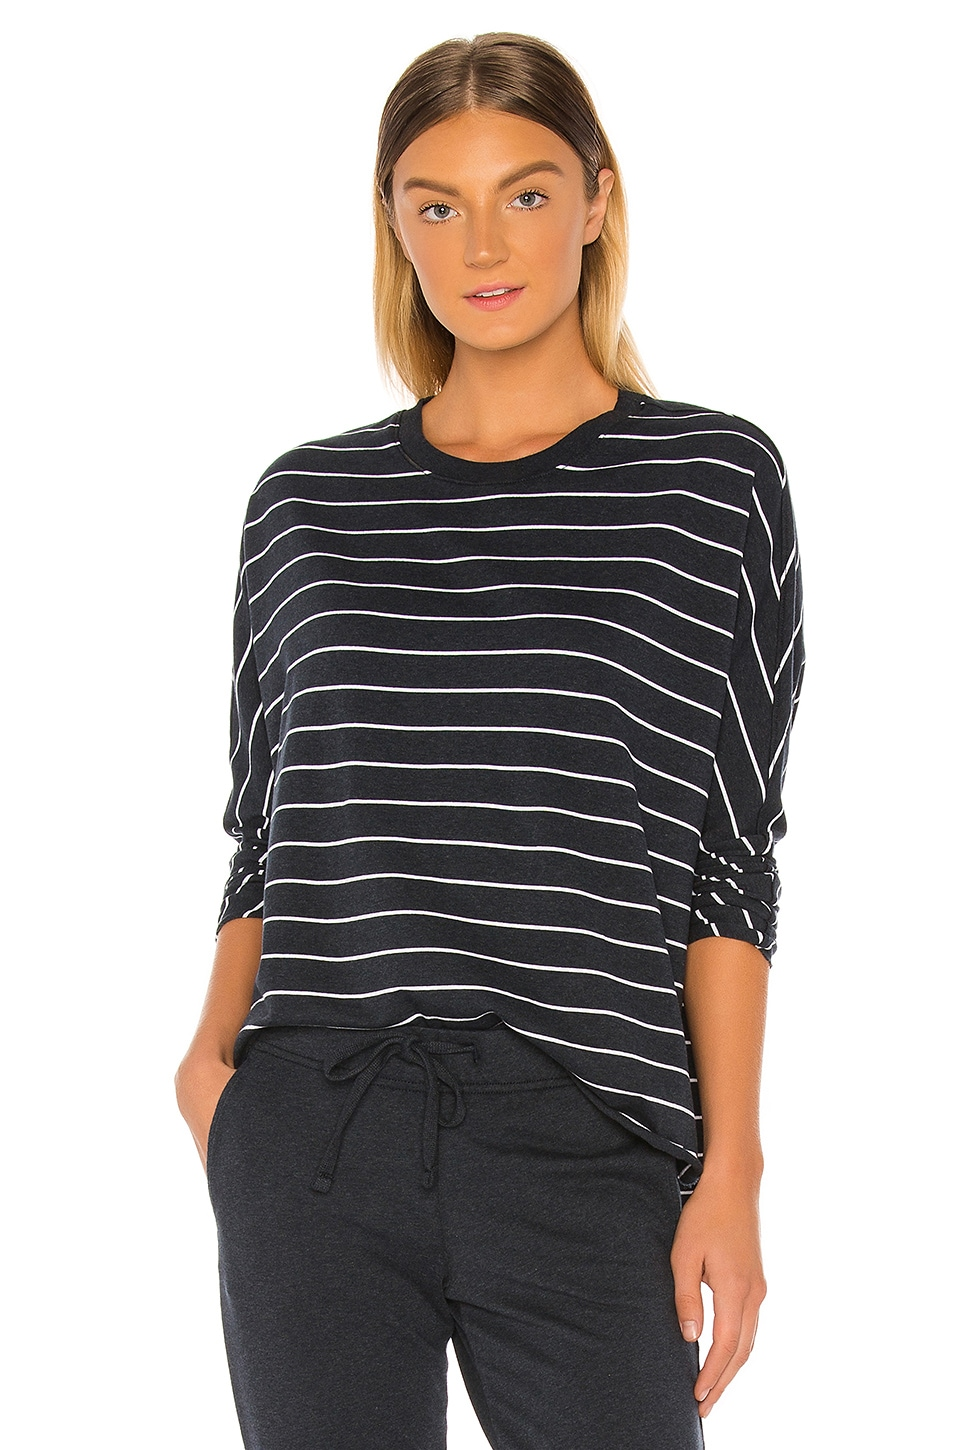 Frank & Eileen tee lab Royal French Terry Long Sleeve in Navy Melange & White Stripe